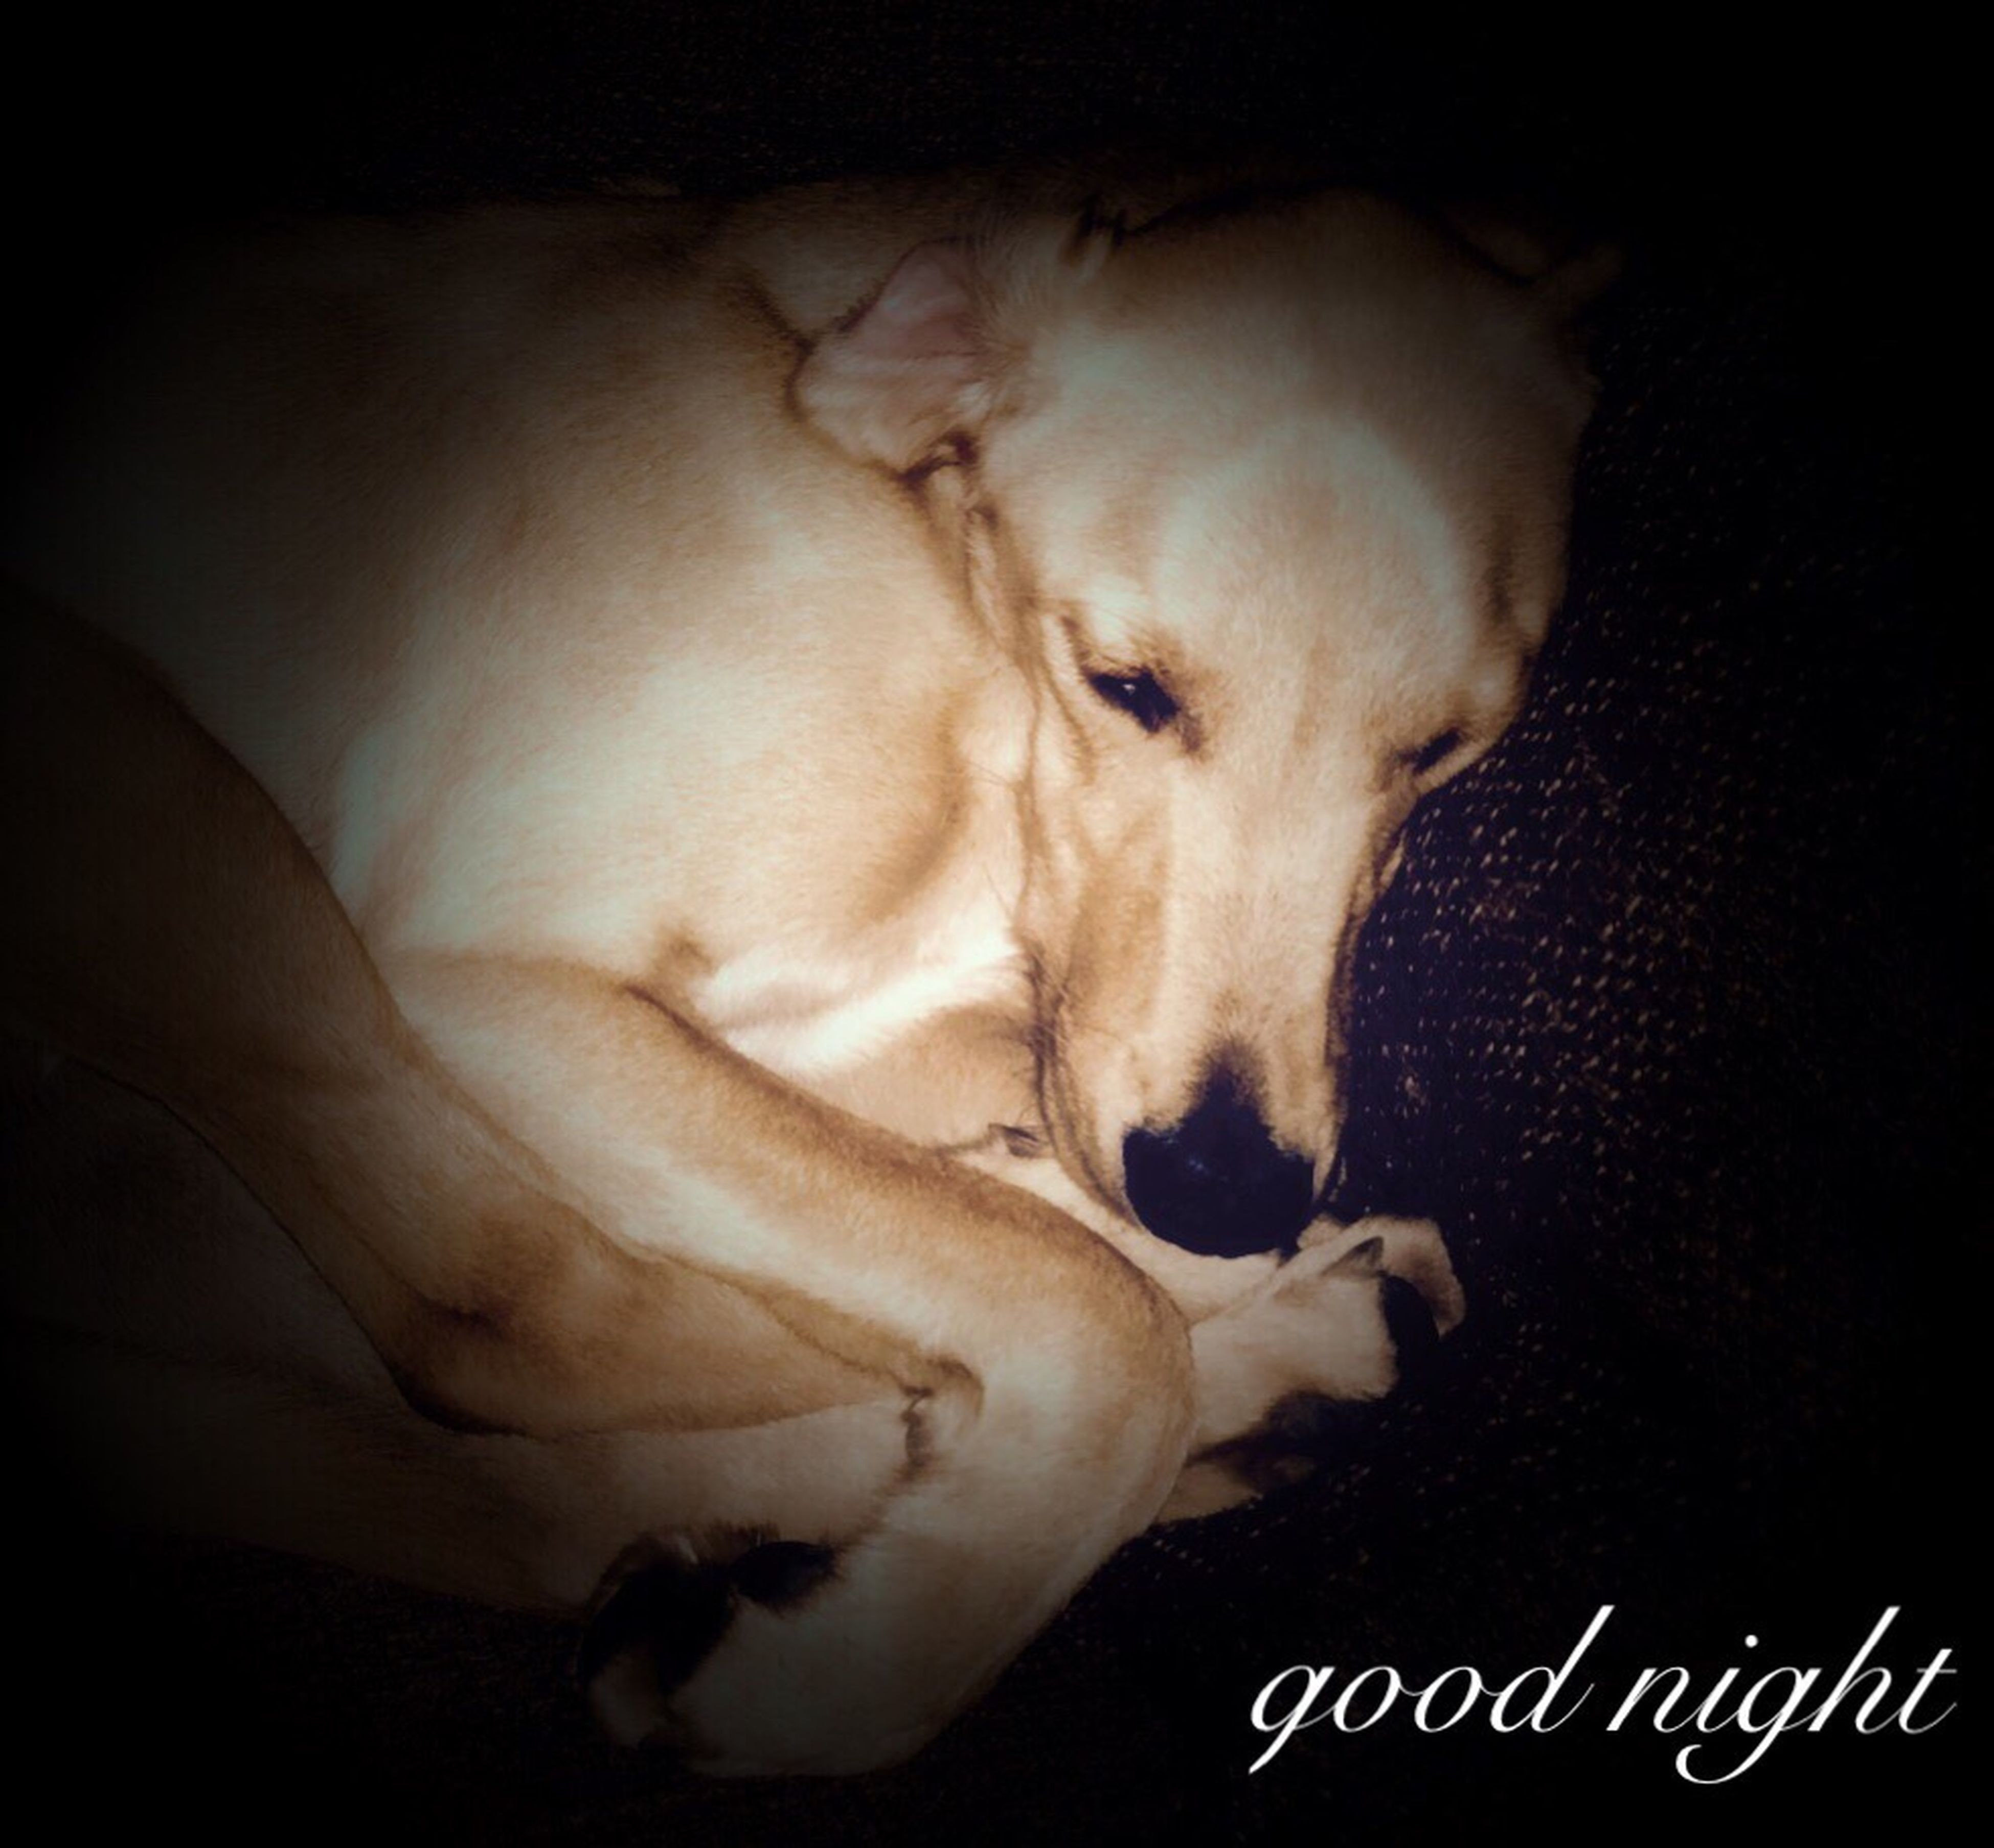 indoors, domestic animals, animal themes, one animal, pets, dog, mammal, relaxation, lying down, sleeping, resting, close-up, bed, home interior, part of, person, eyes closed, sofa